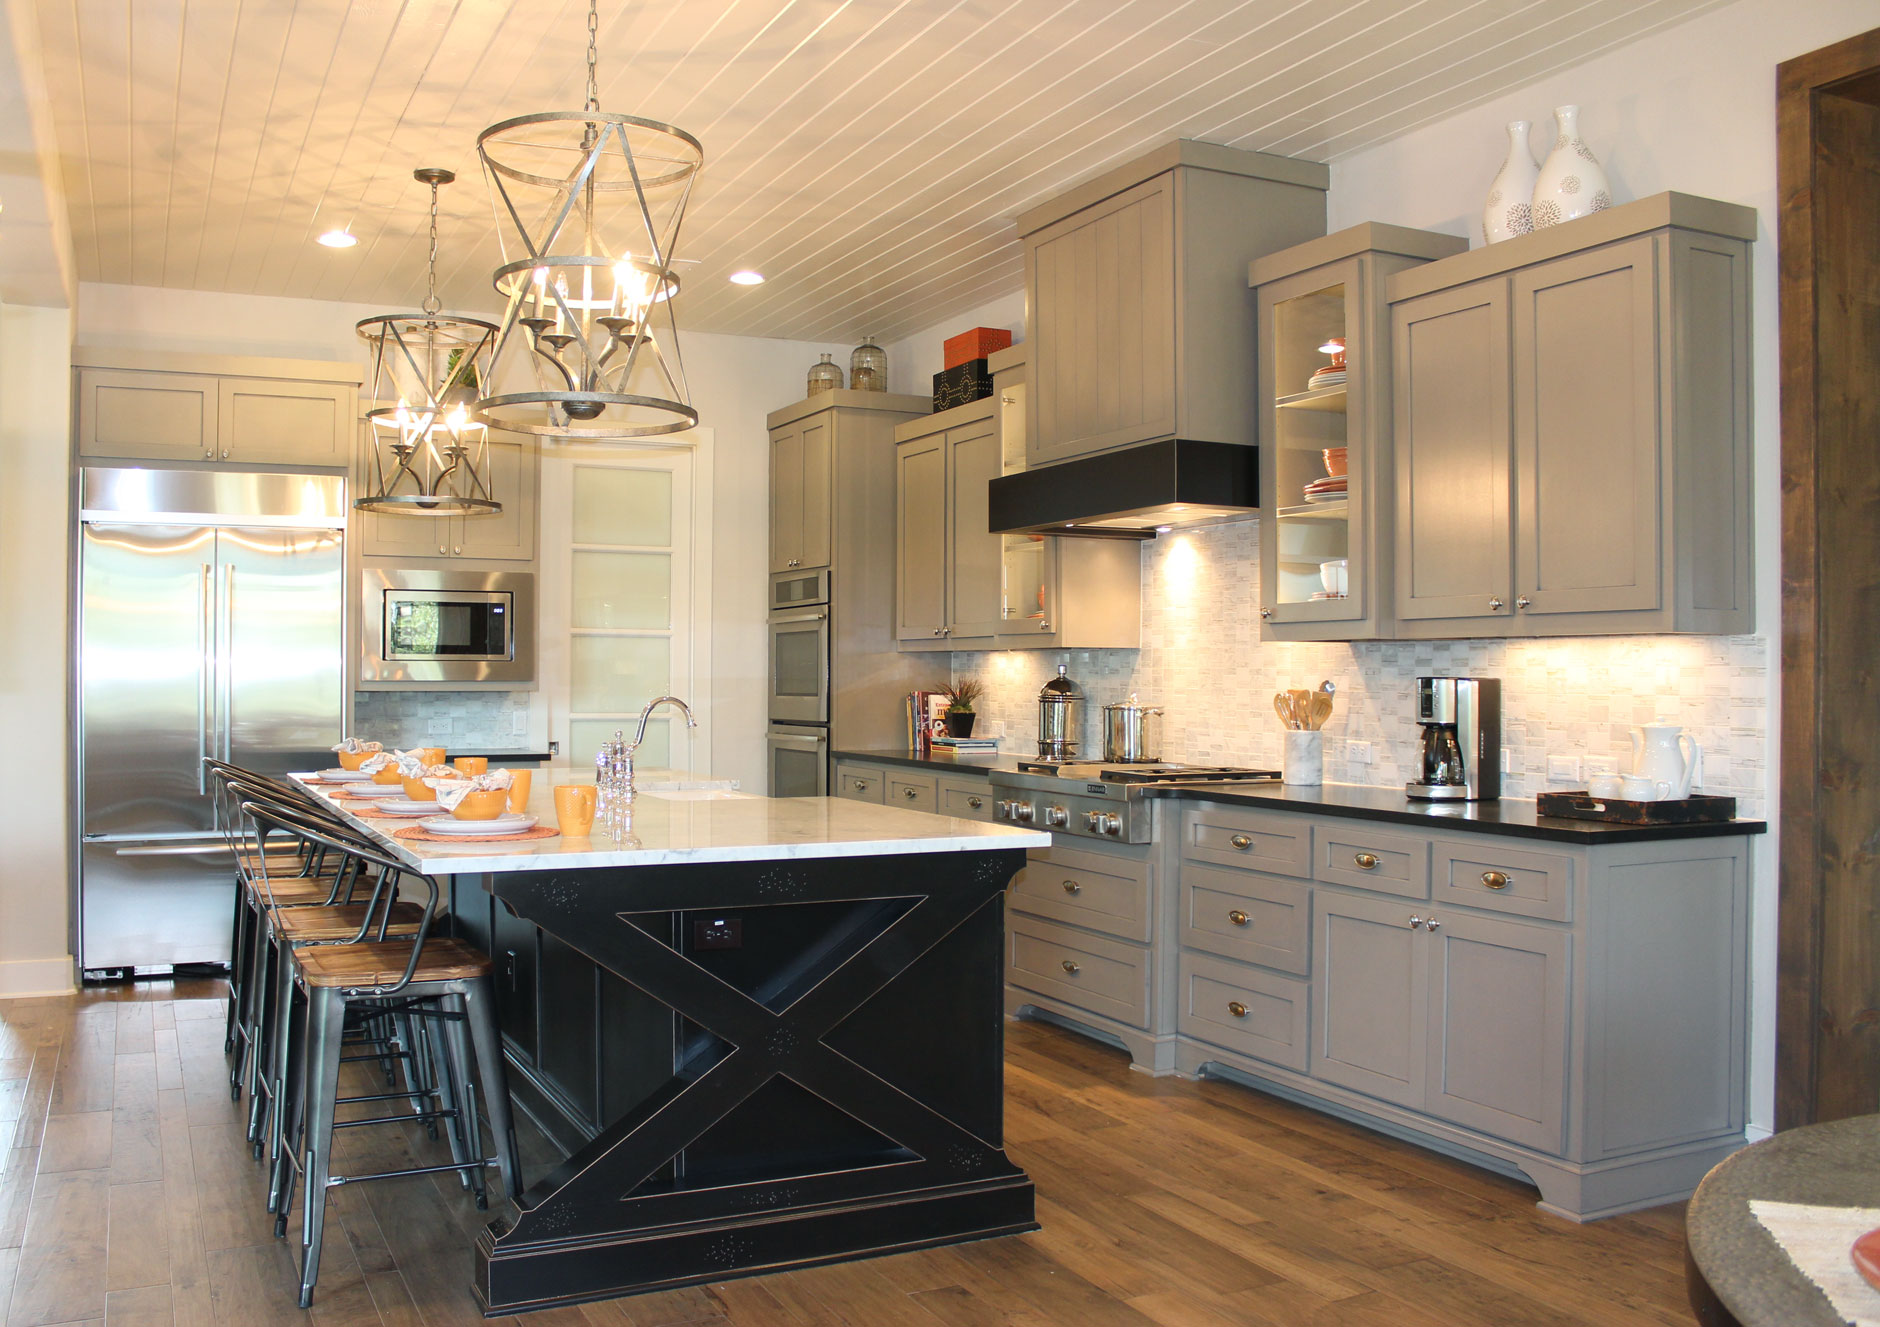 Gray Kitchen Cabinets Burrows Cabinets Central Texas Builder - Where to buy grey kitchen cabinets